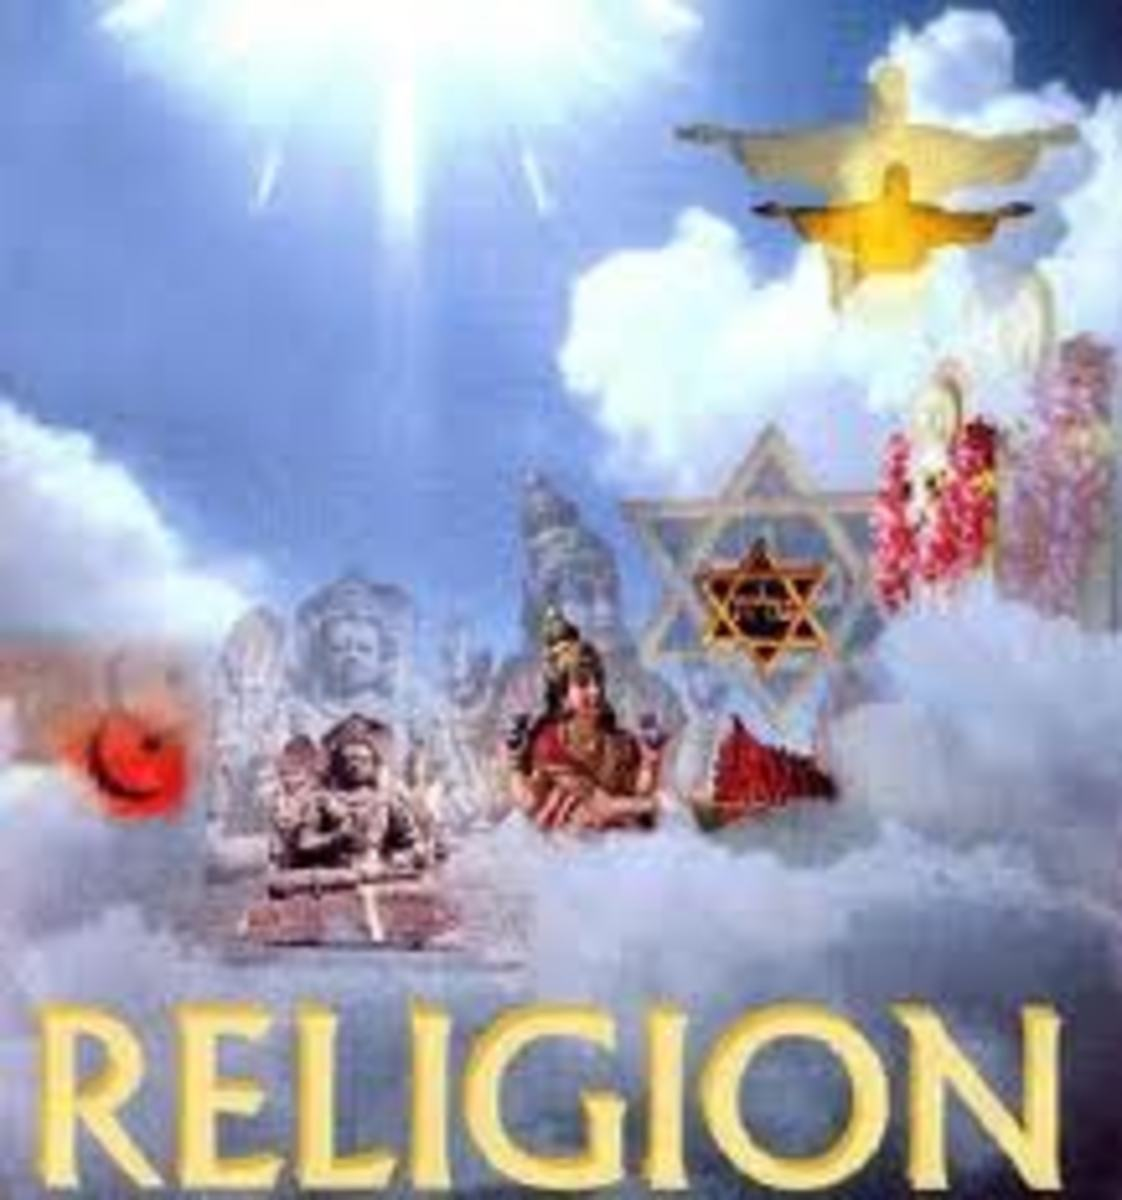 There are many religions in the world, so it is only natural that we wonder about God and religions all our lives, anyhow here we are looking at how God could or should be described in the future for the benefit of all humanity.